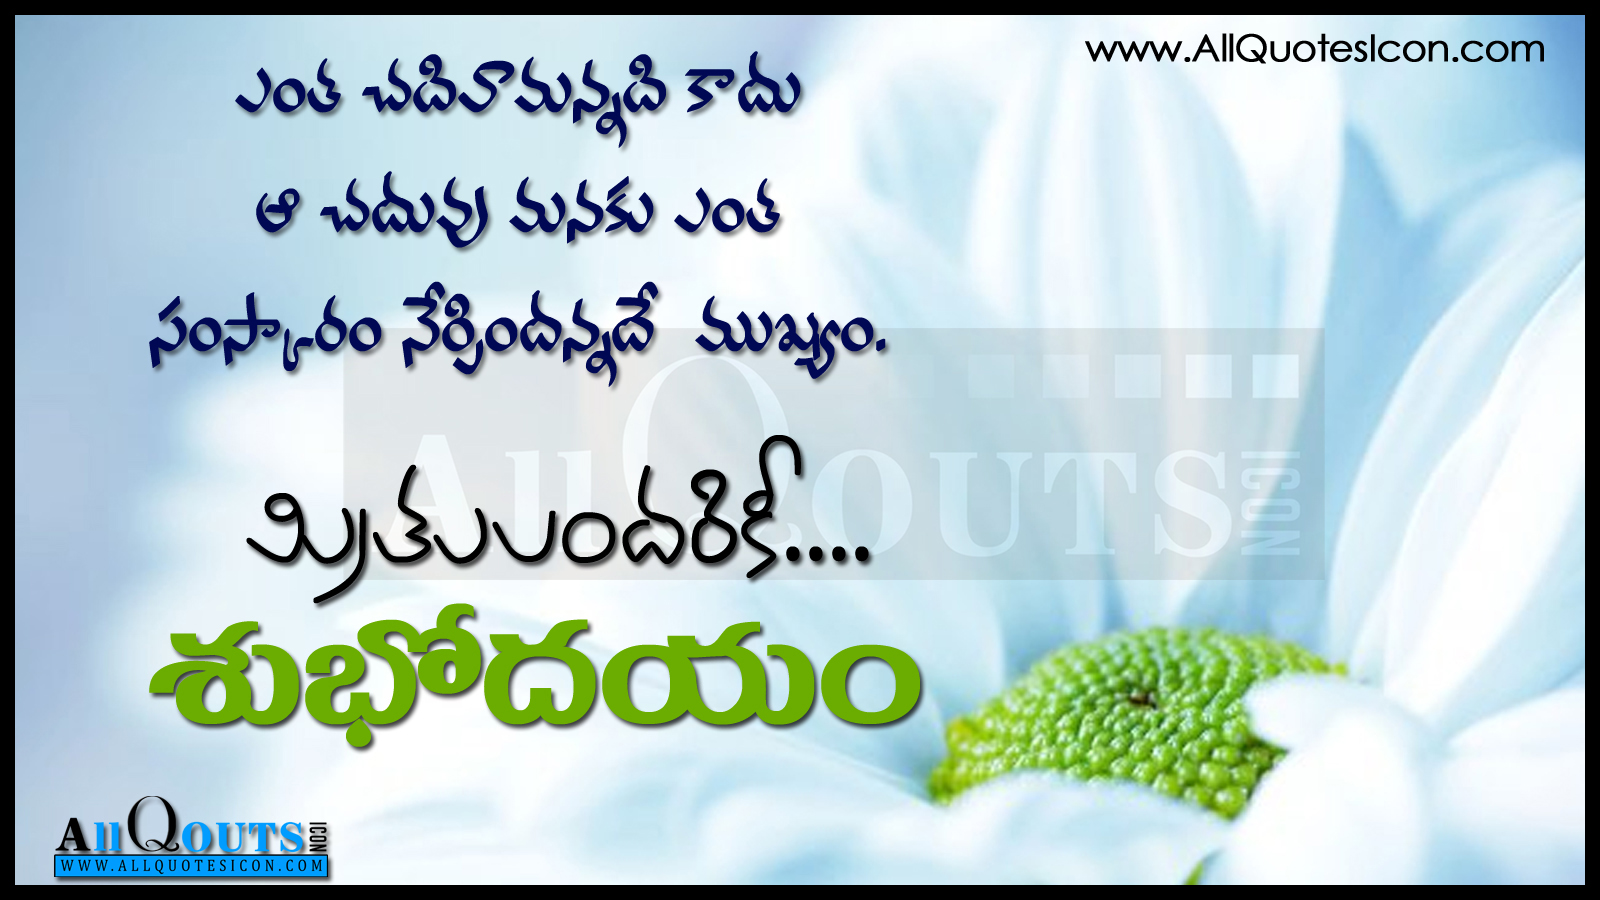 Good Morning Telugu Quotes Hd Wallopapers Best Good Morning Wishes